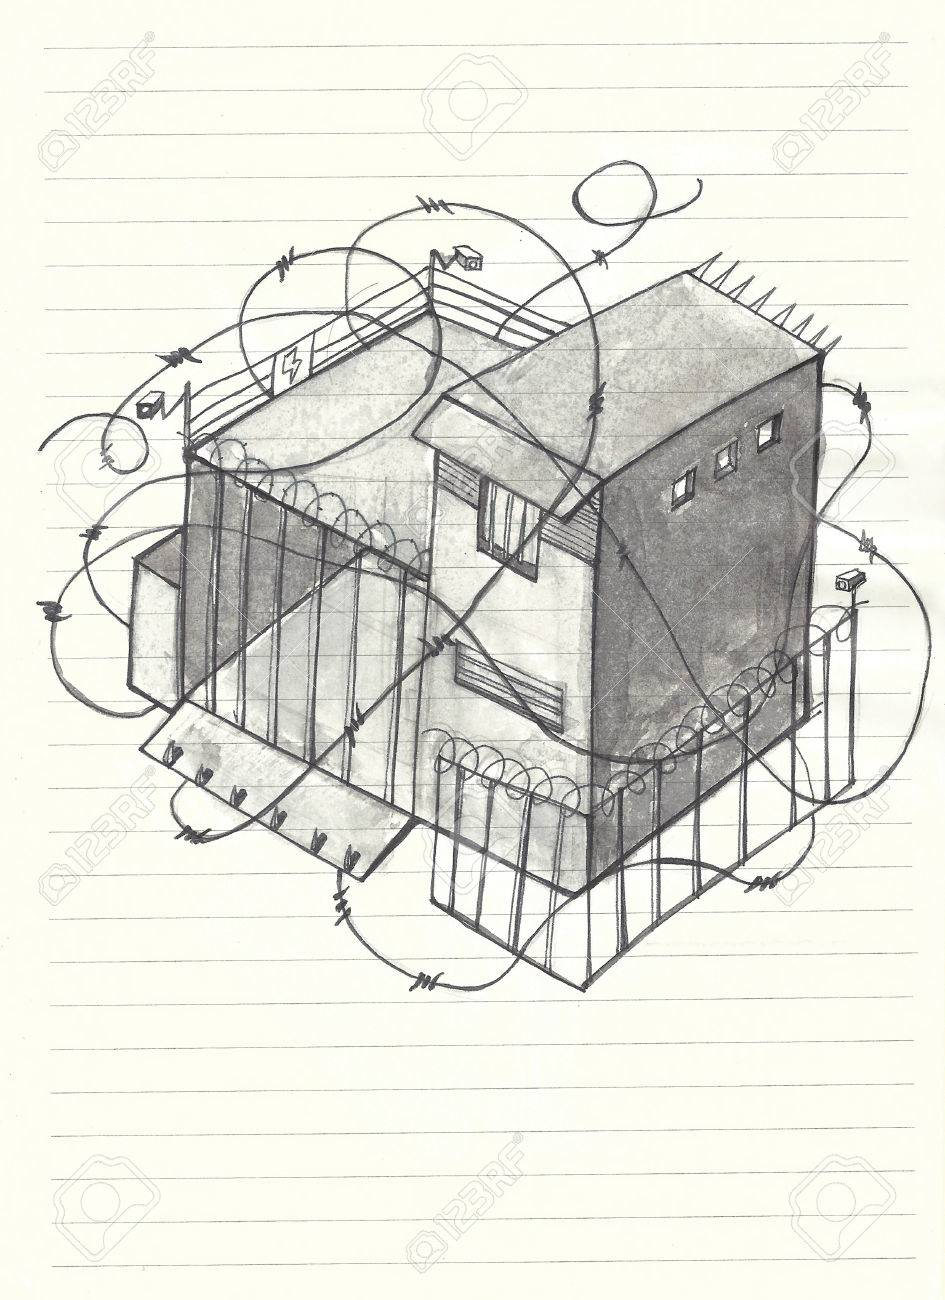 Hand Drawn Illustration Of A House With A Lot Of Barb Wire, Cameras ...